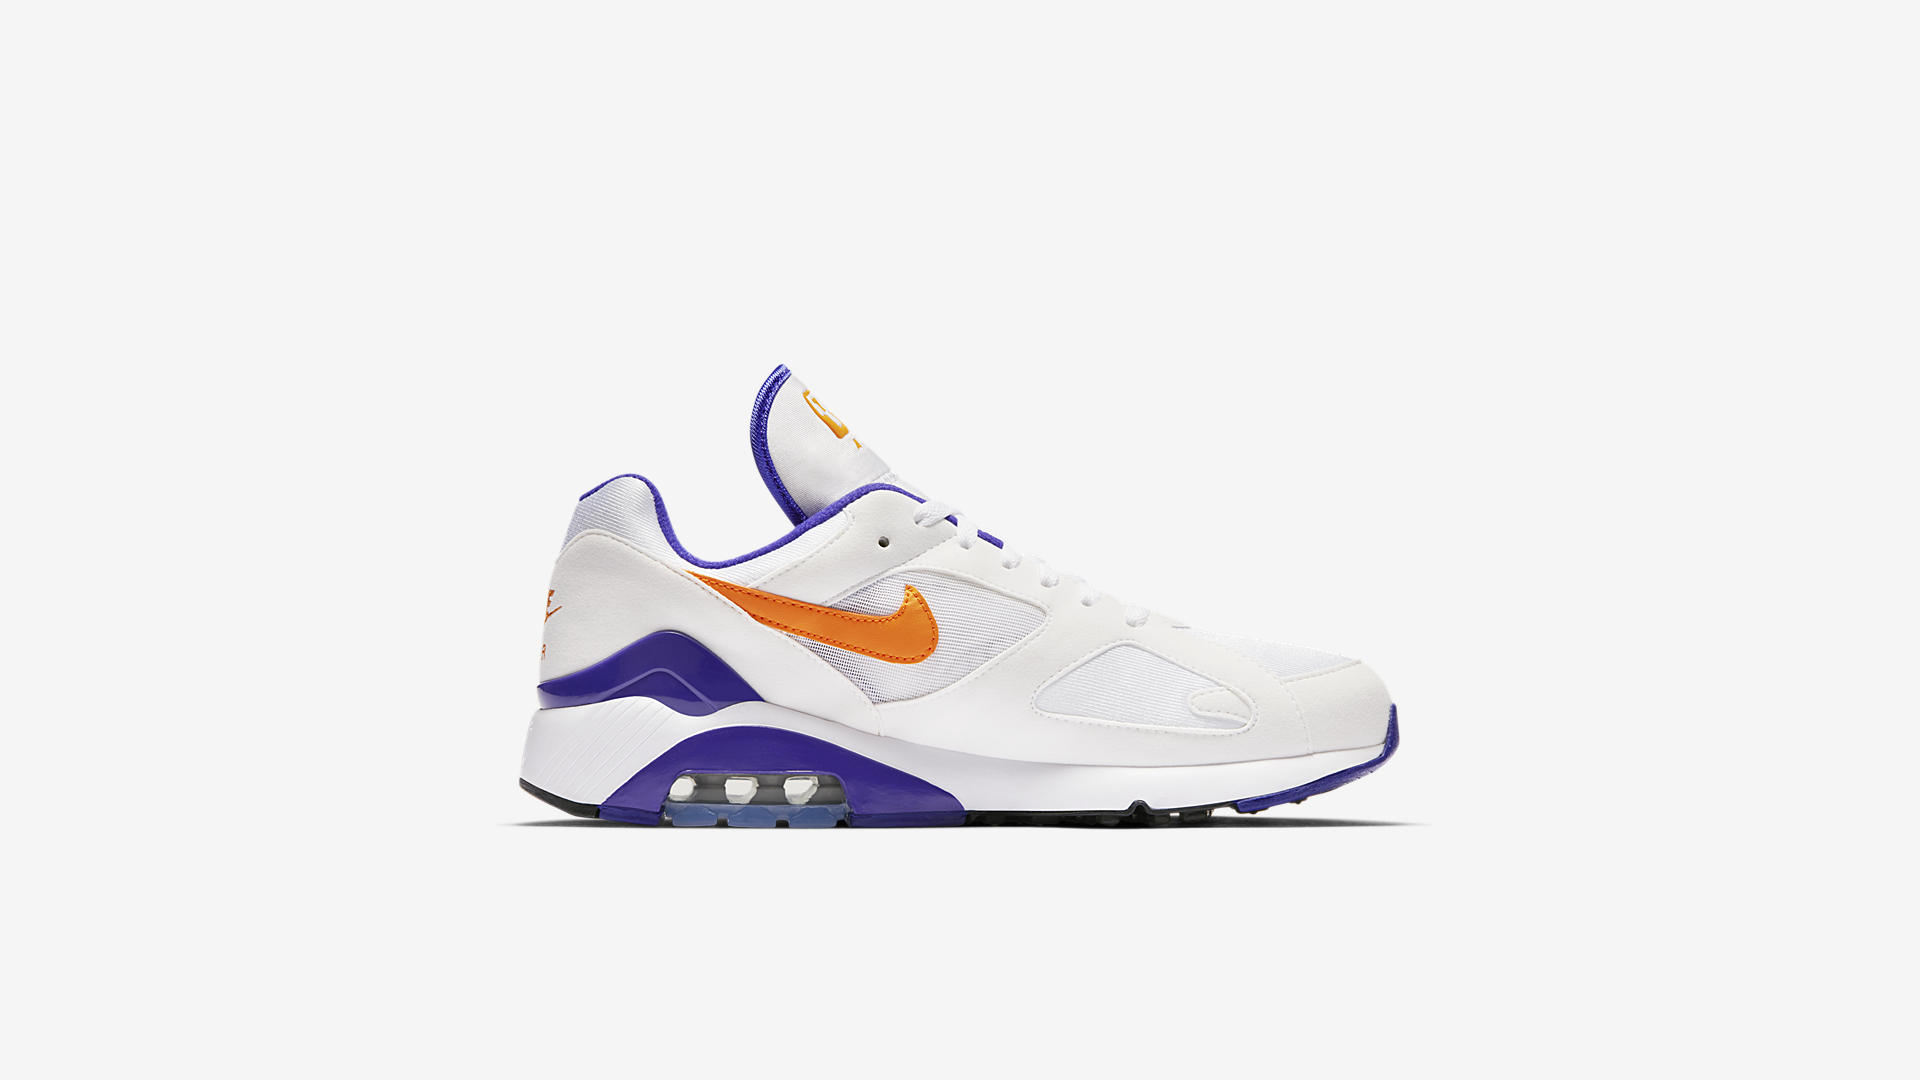 615287 101 Nike Air Max 180 Bright Ceramic 4